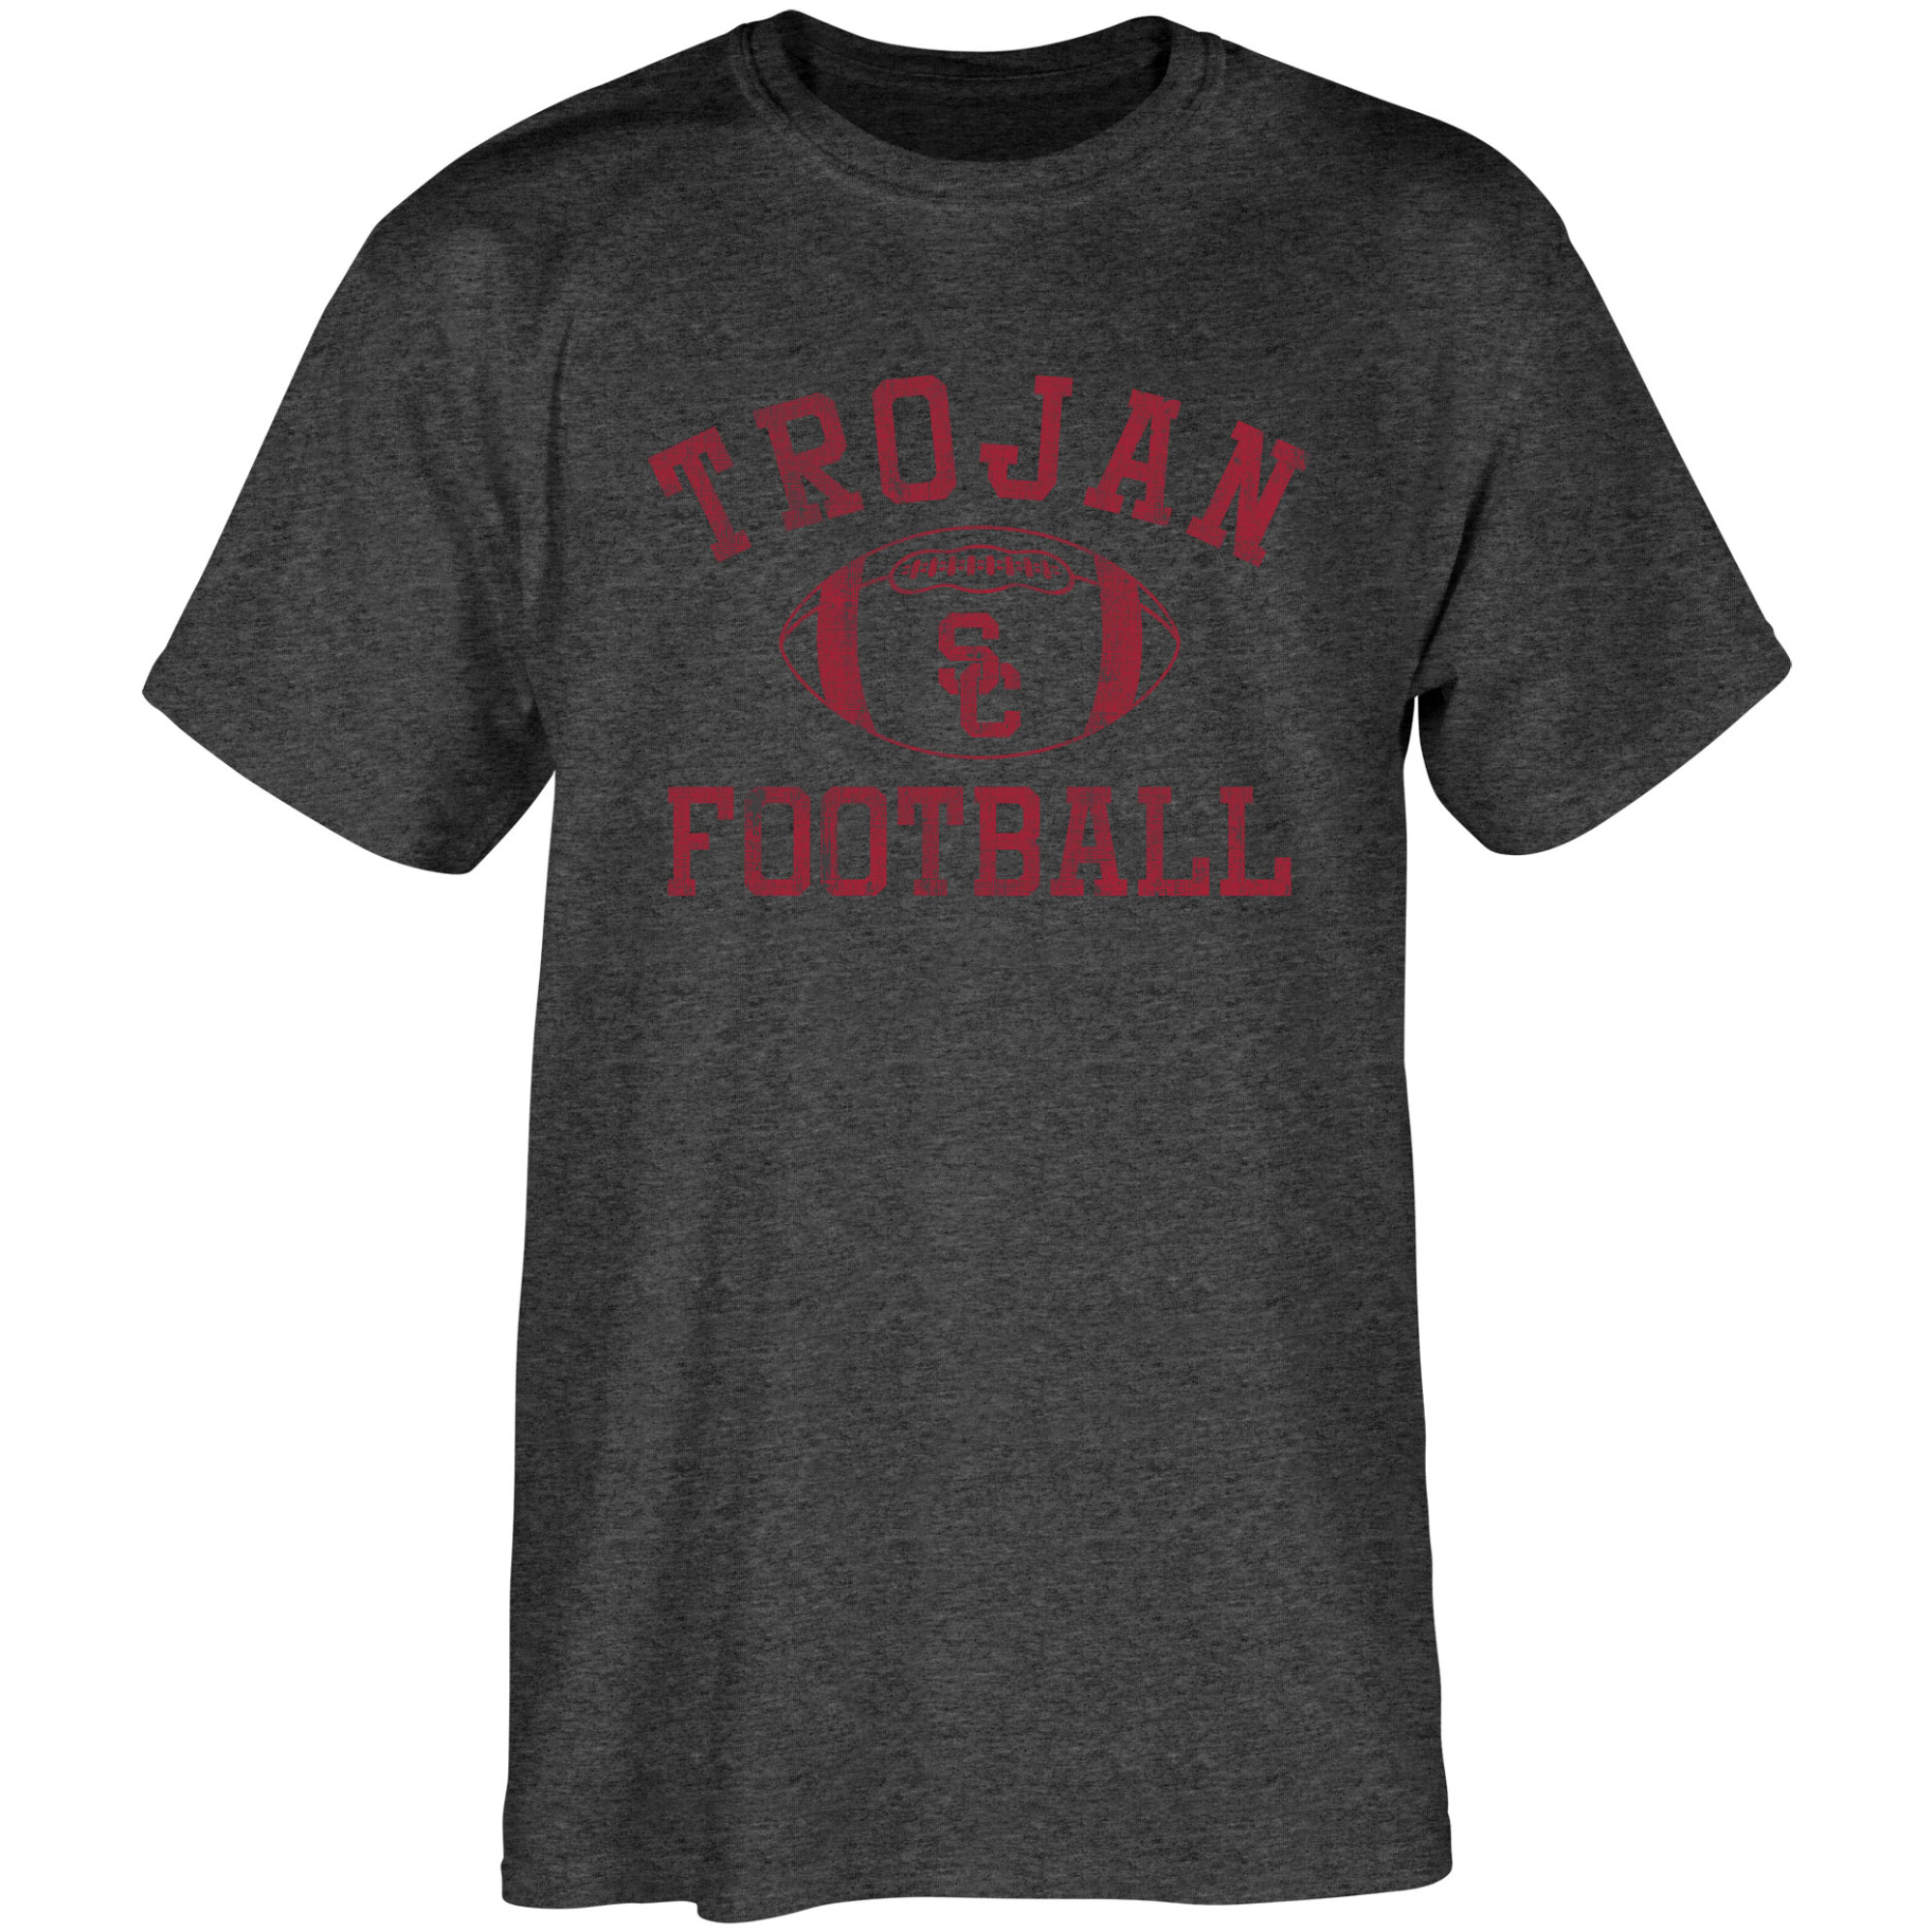 Men's Heathered Black USC Trojans Old Authentic Distressed T-Shirt